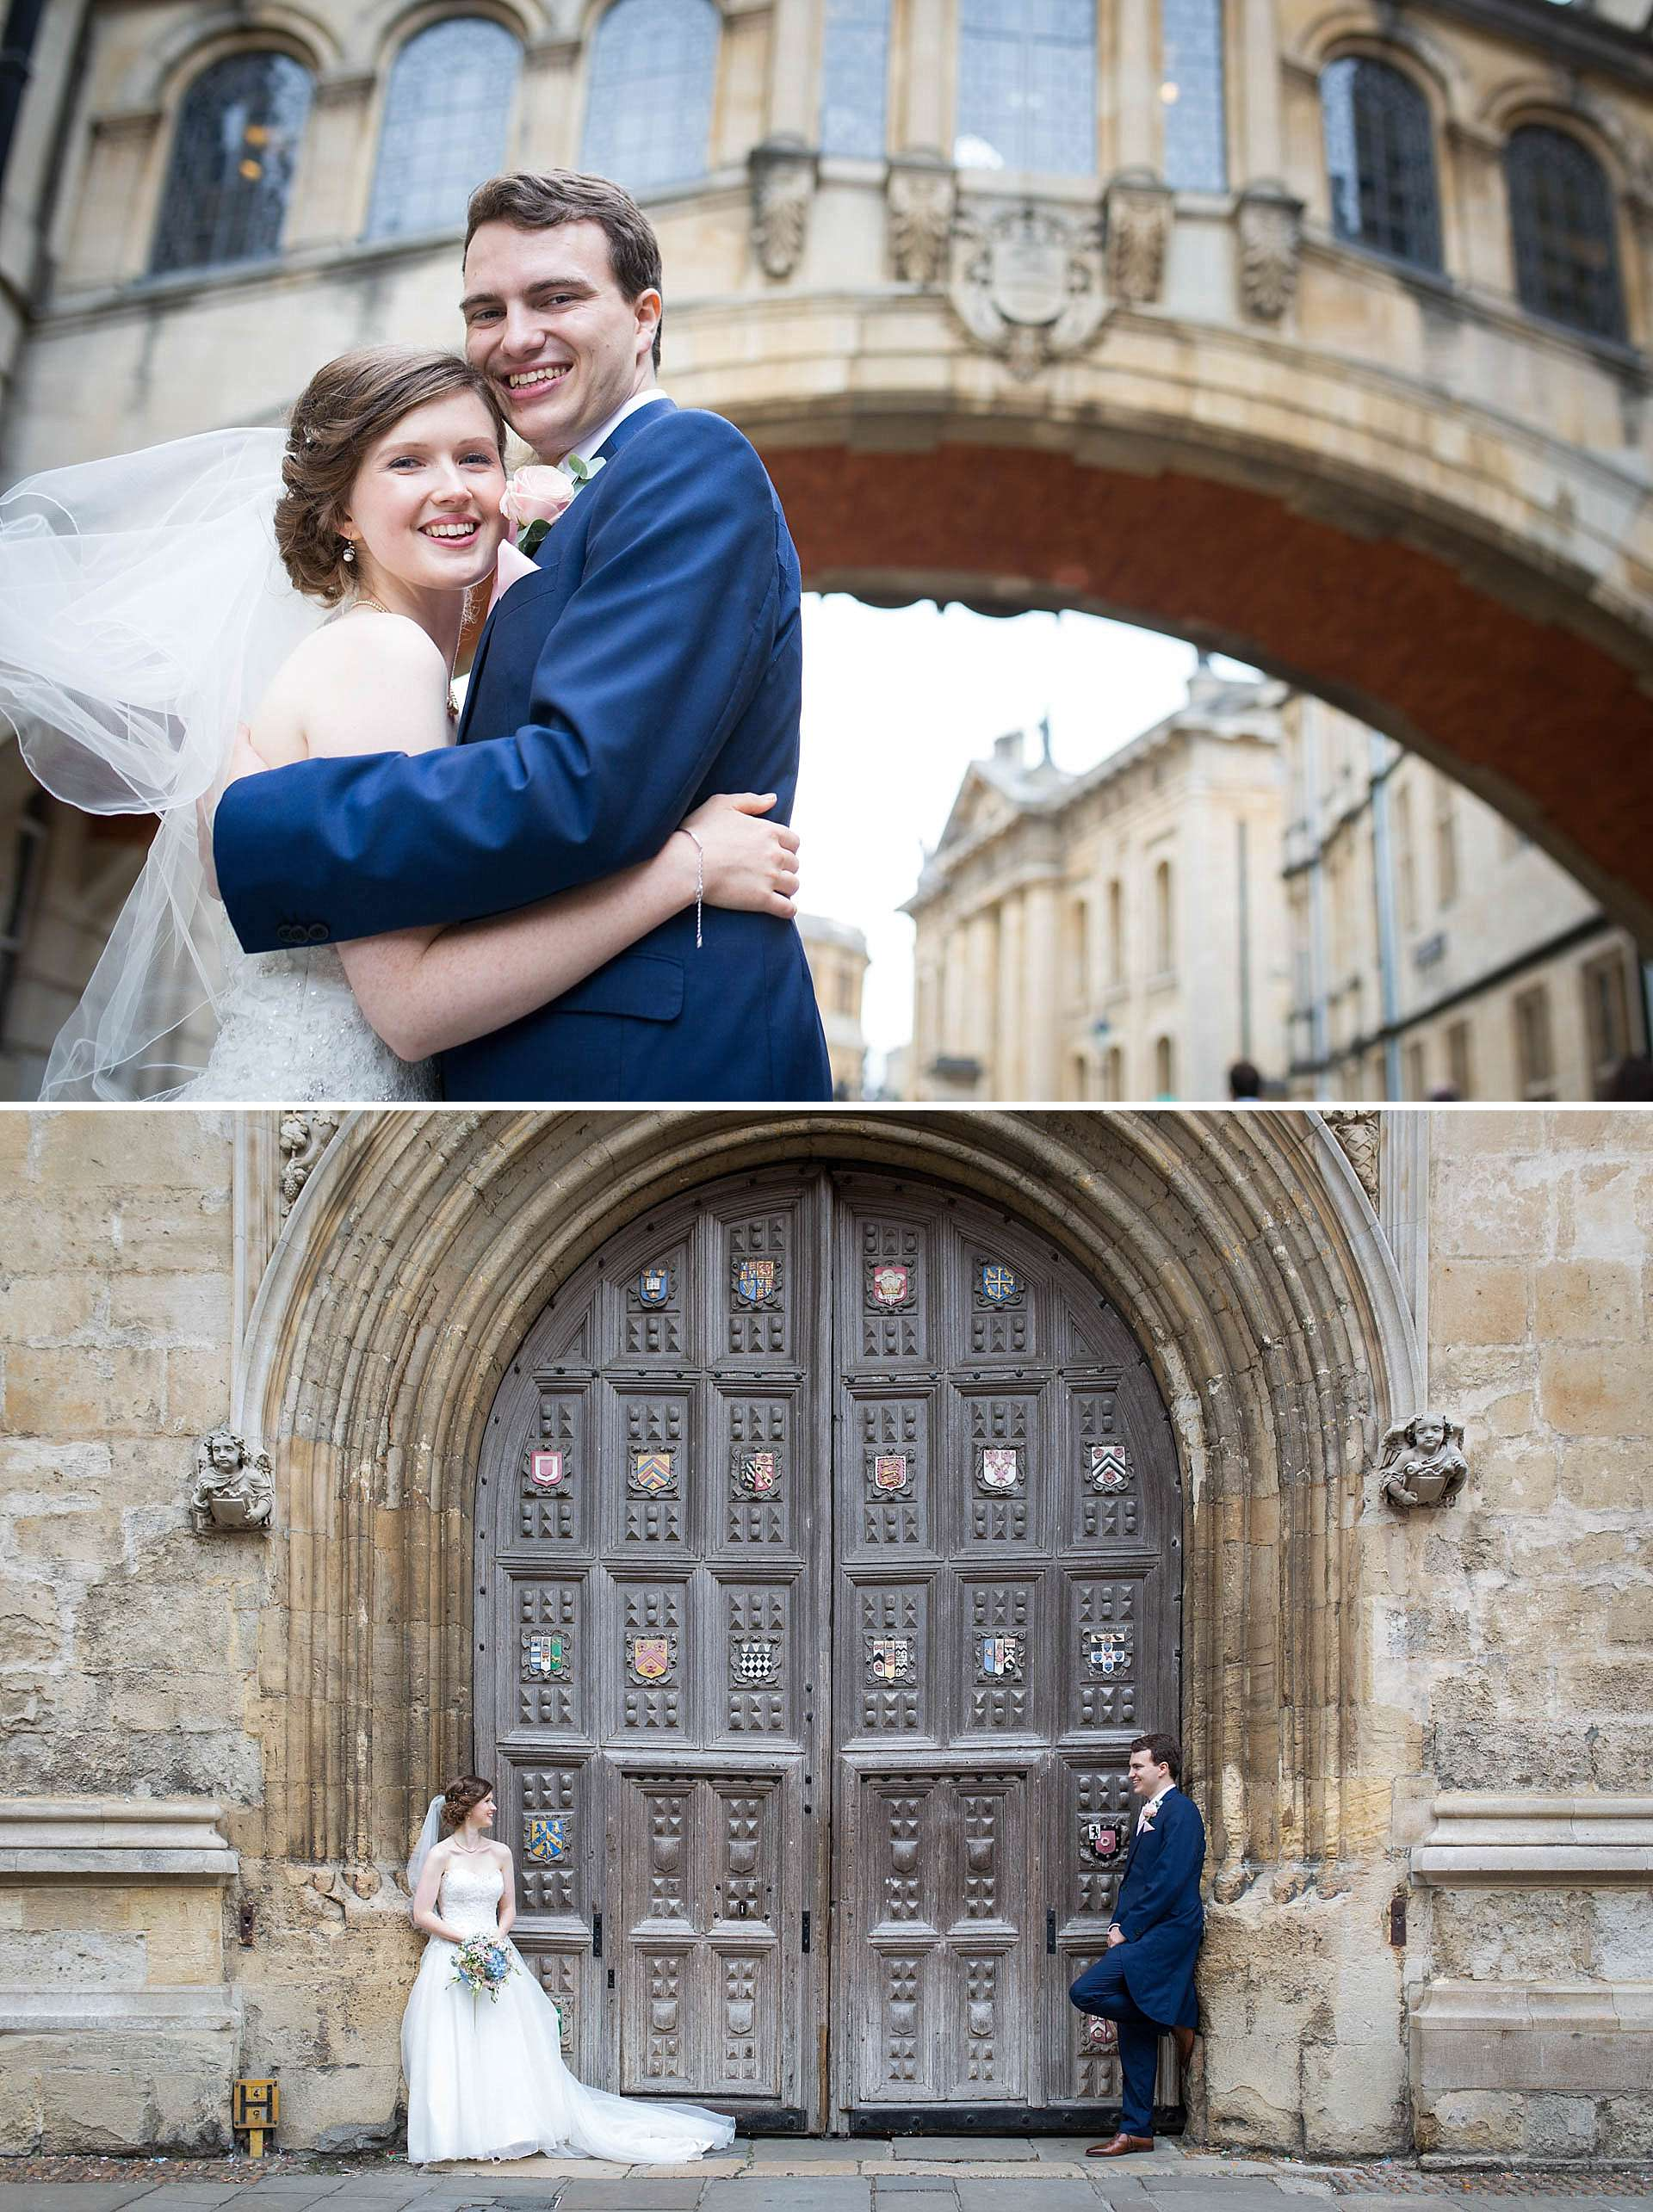 Bridge of Sighs wedding portrait